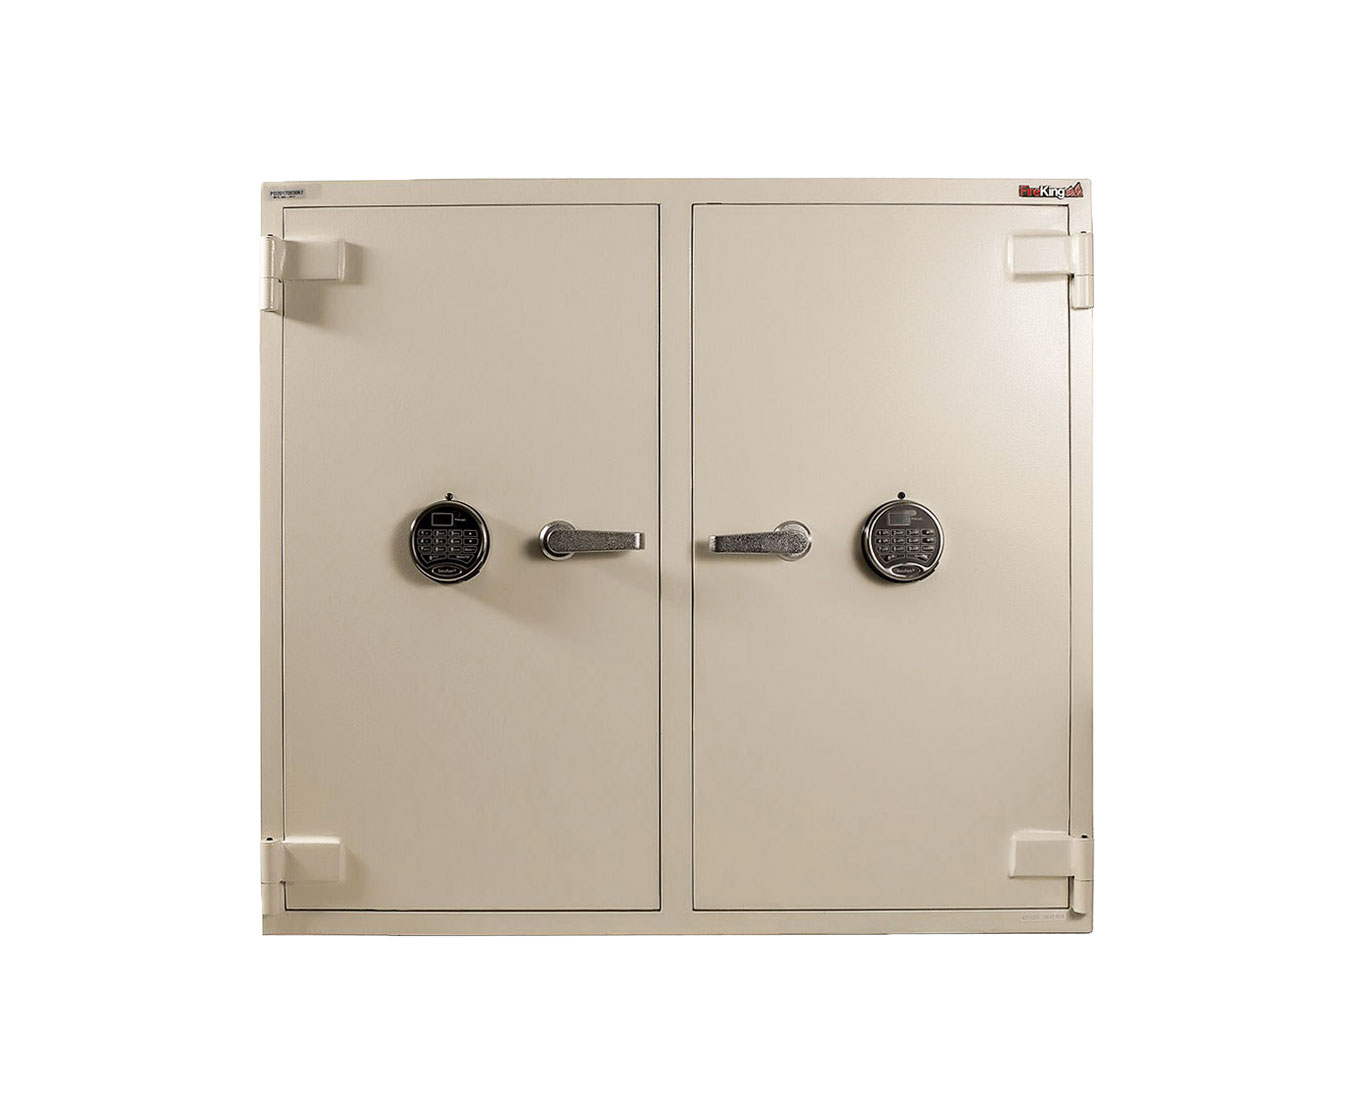 RX3641 B3641 Pharmacy Safe Front View